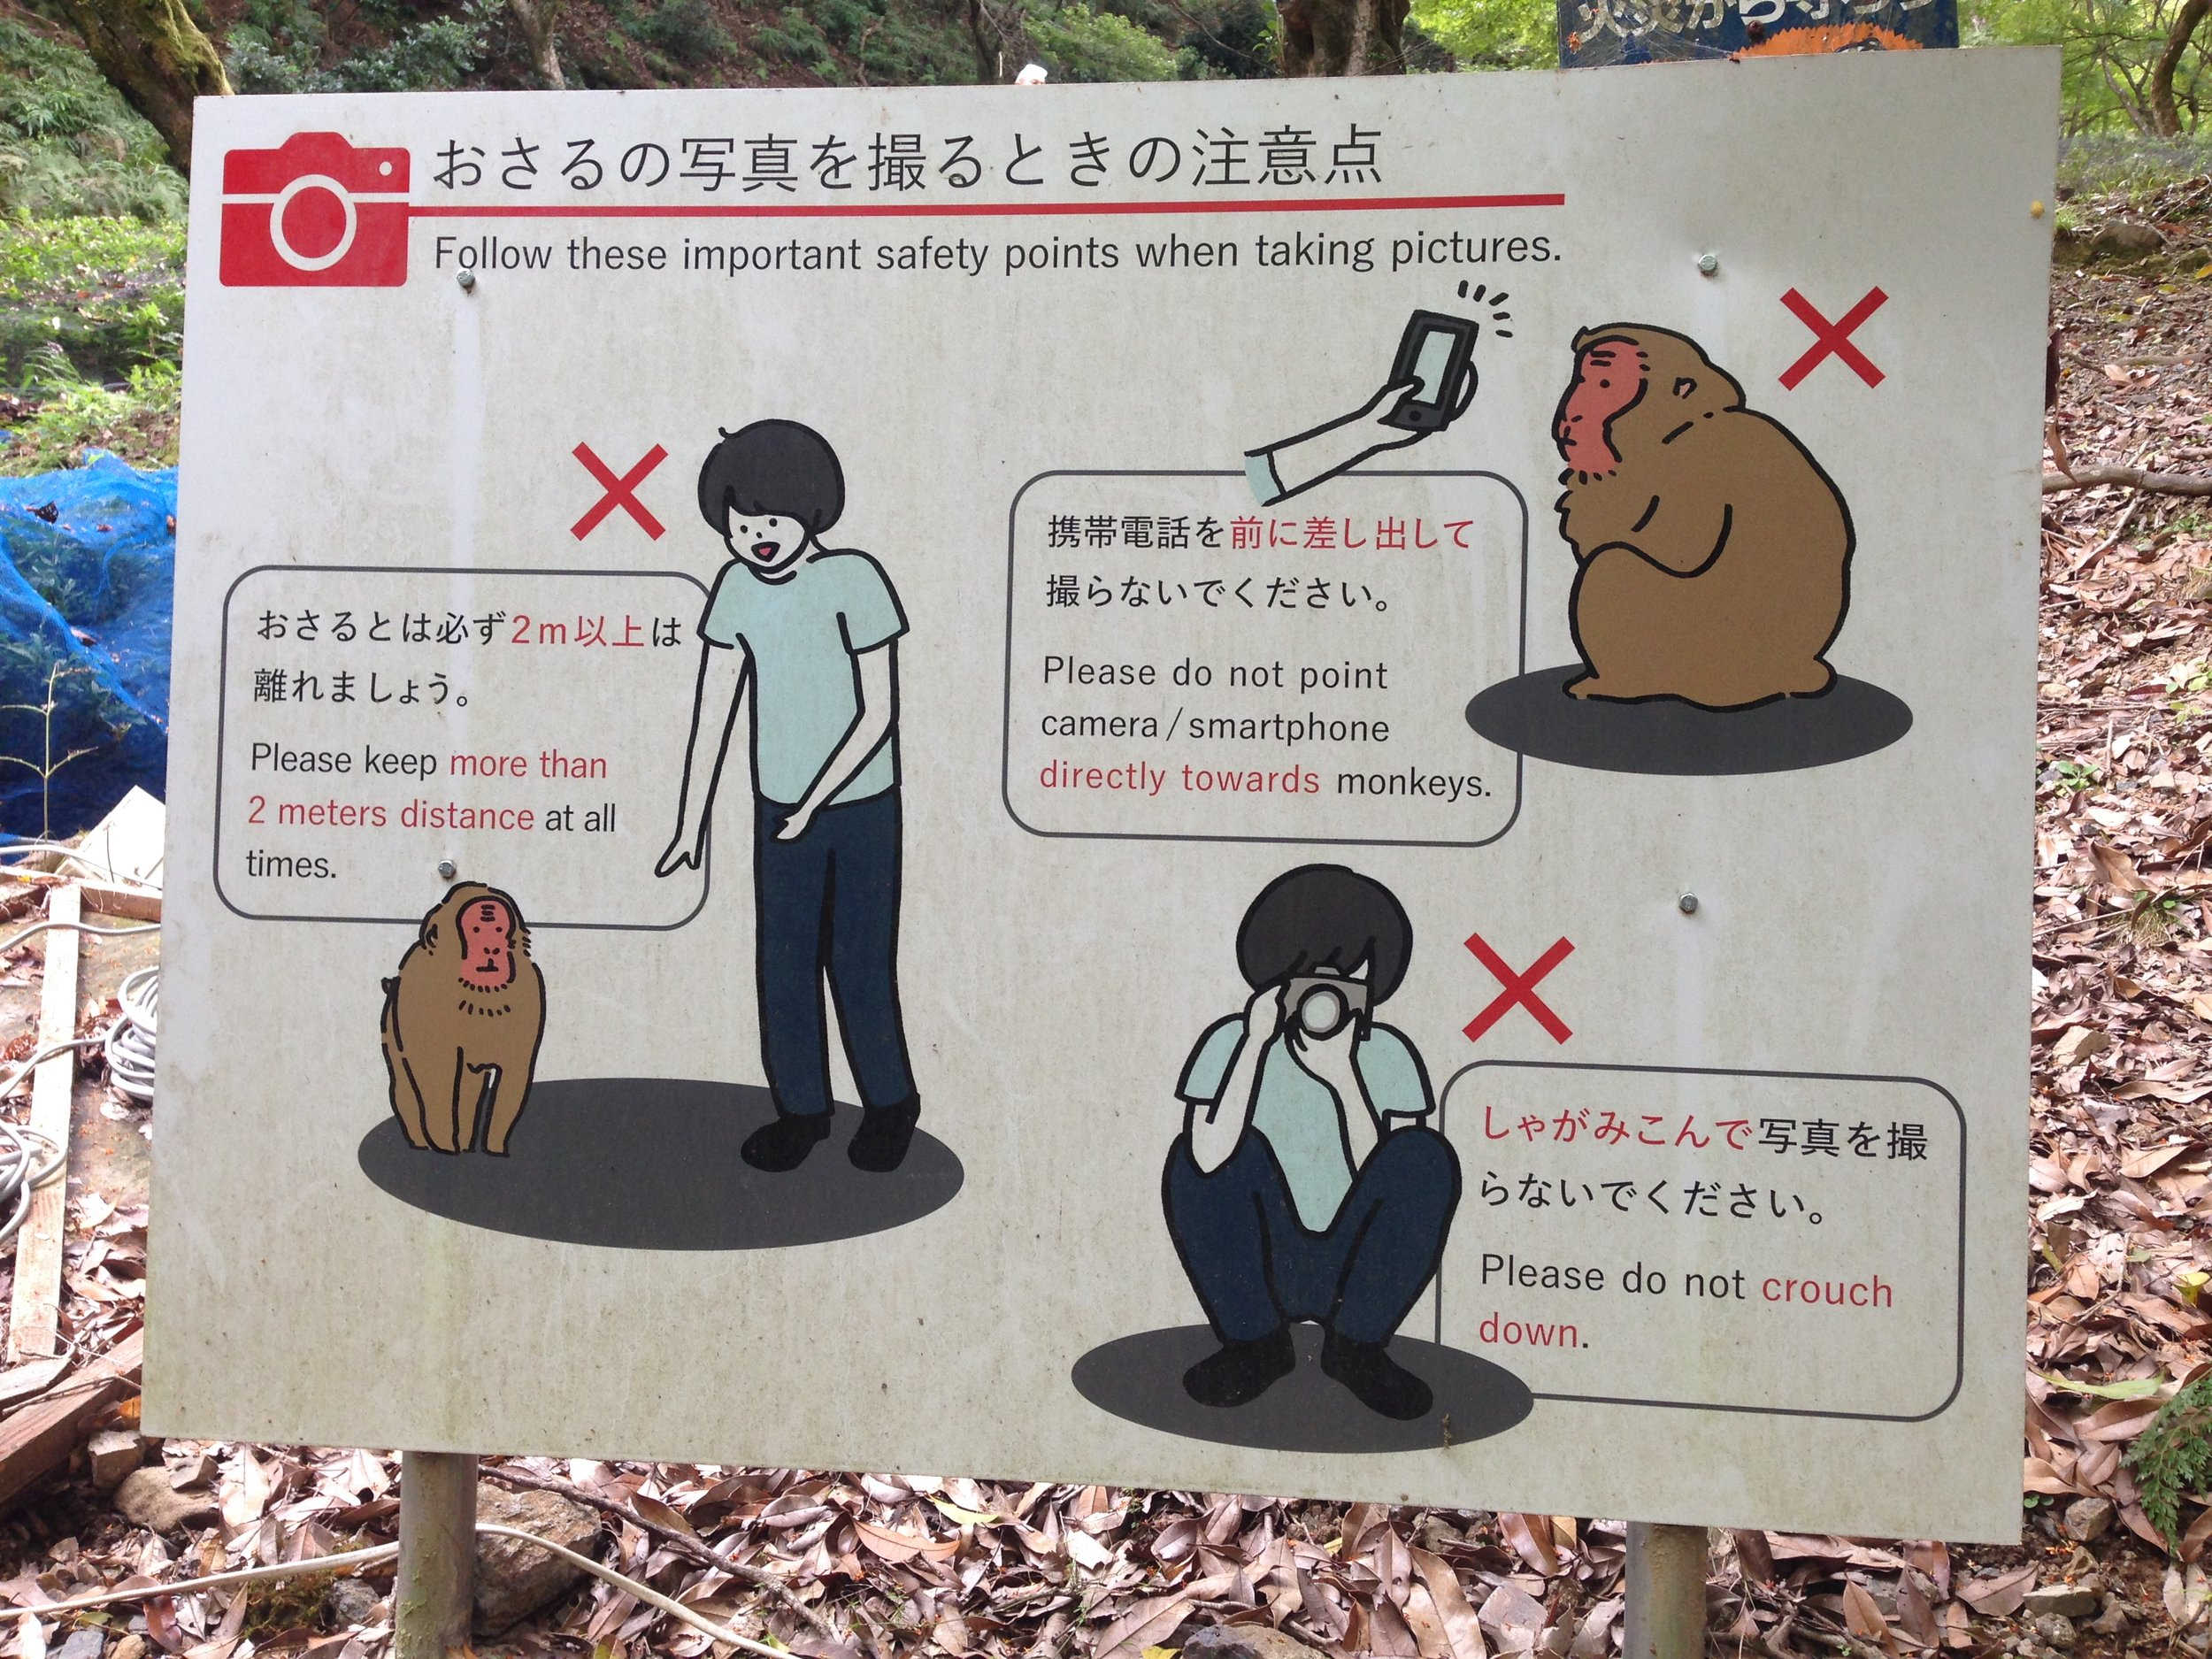 Can someone explain why we need reminding of these safety points? Replace these monkeys with humans, and wouldn't the same rules apply? Hm...